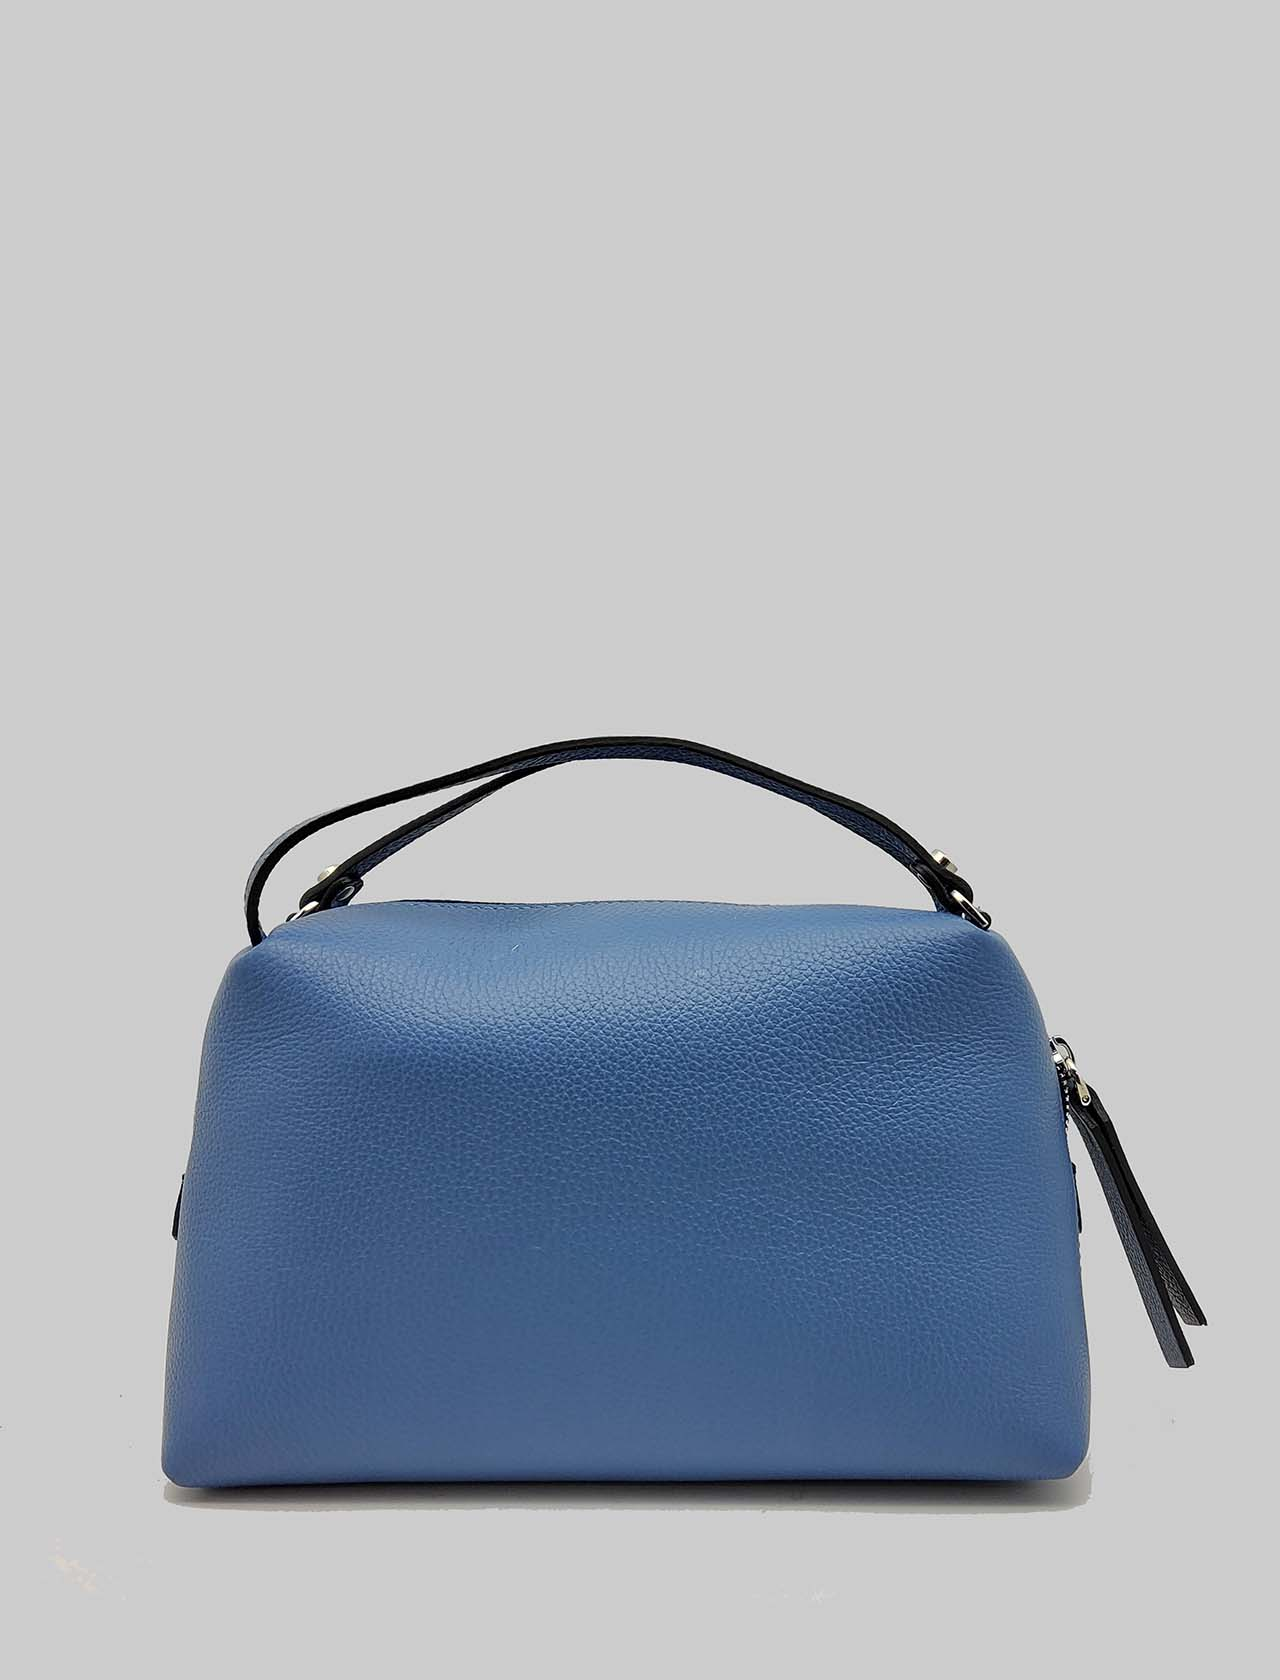 Alifa Woman's Bag in Powder Blue Leather with Double Hand Handle and Removable Shoulder Strap Gianni Chiarini | Bags and backpacks | BS814811710